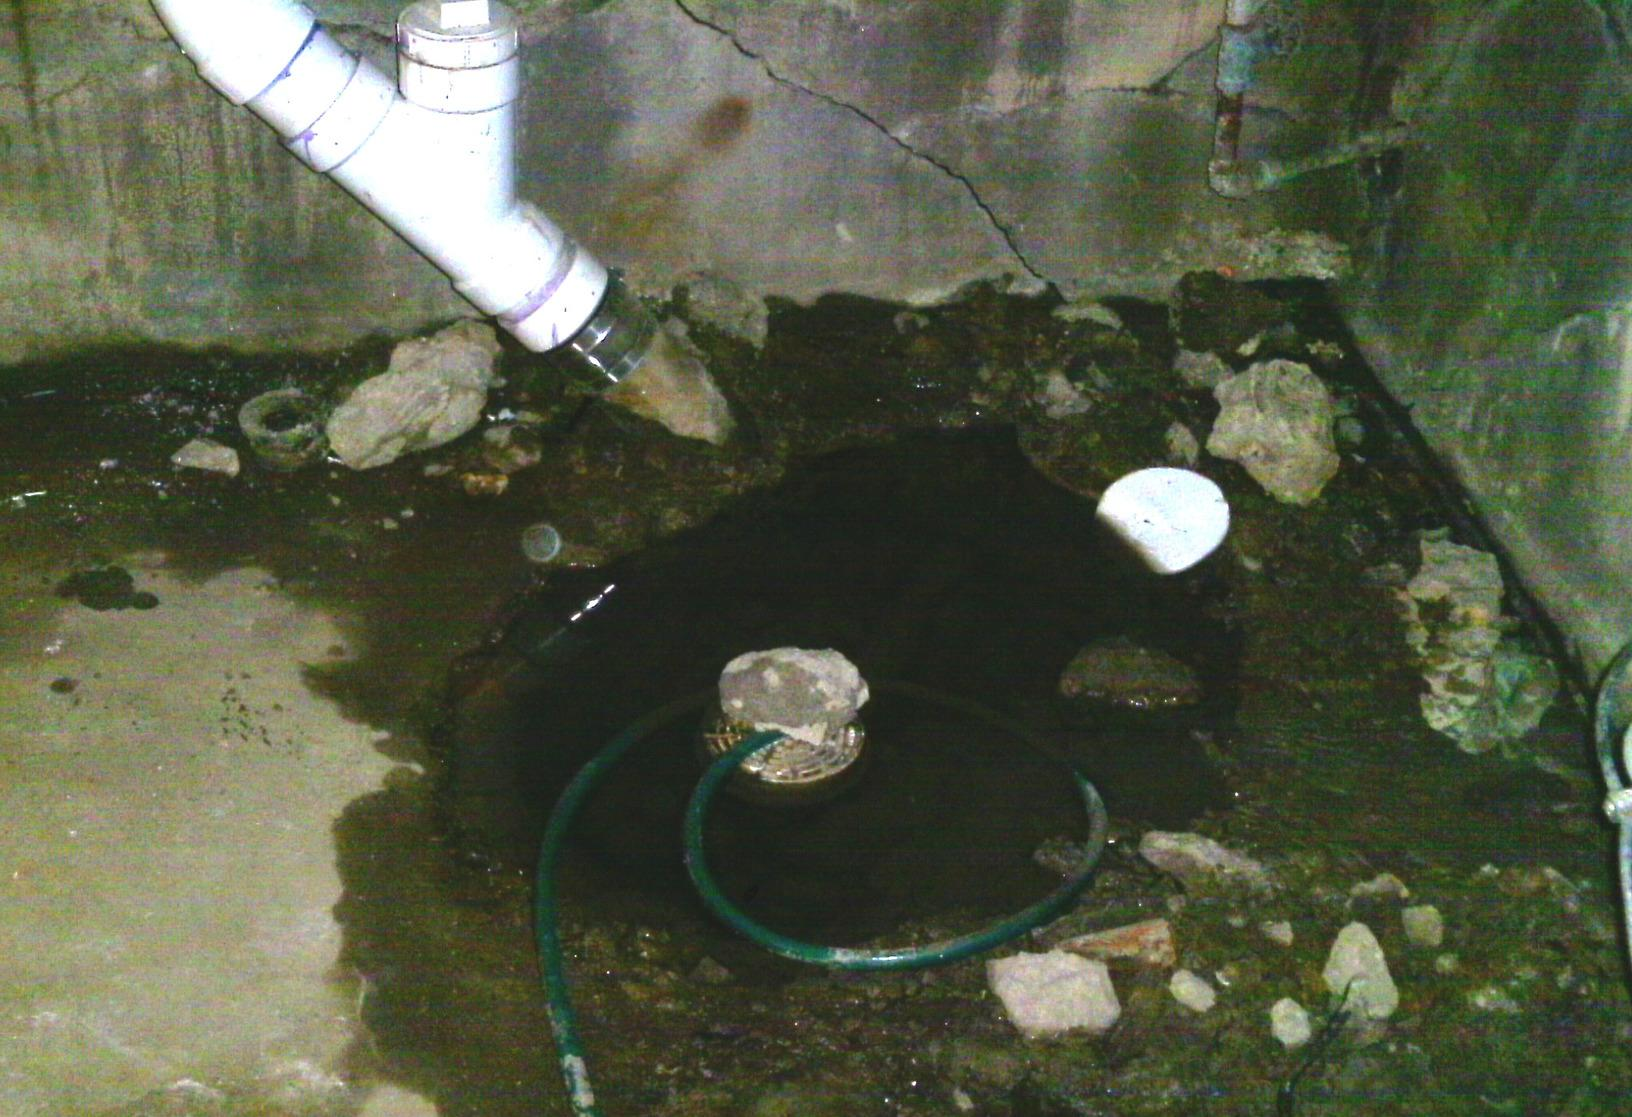 The previous homeowner made a make shift sump pump in an attempt to waterproof the crawl space, an endeavor that ultimately failed.